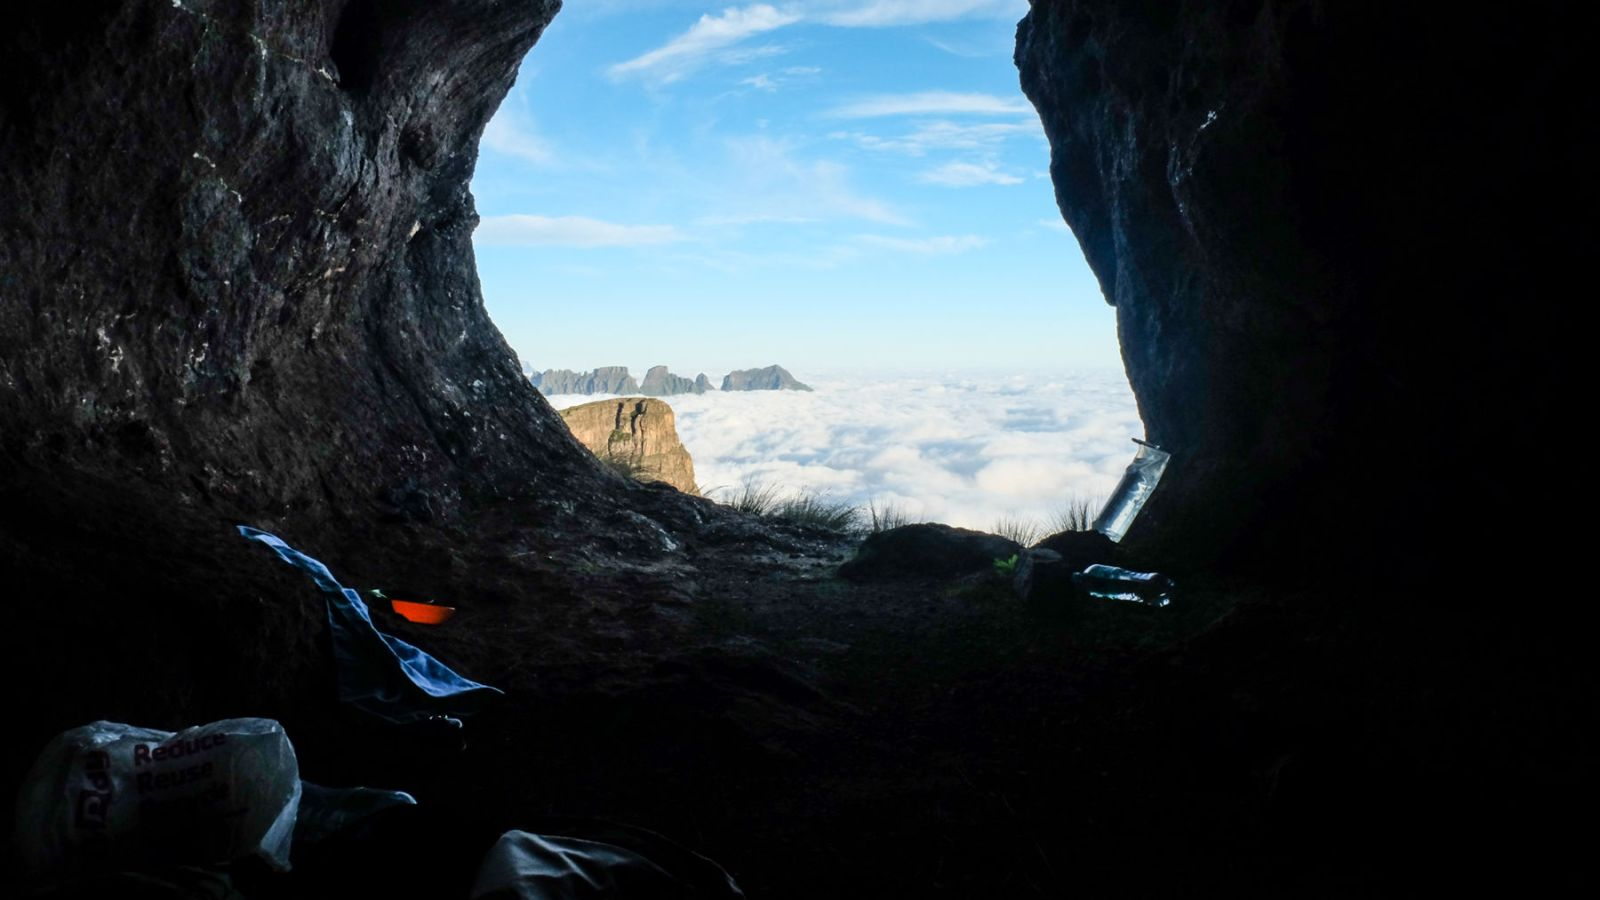 view from the cave in the drakensberg mountains showing clouds in the valley